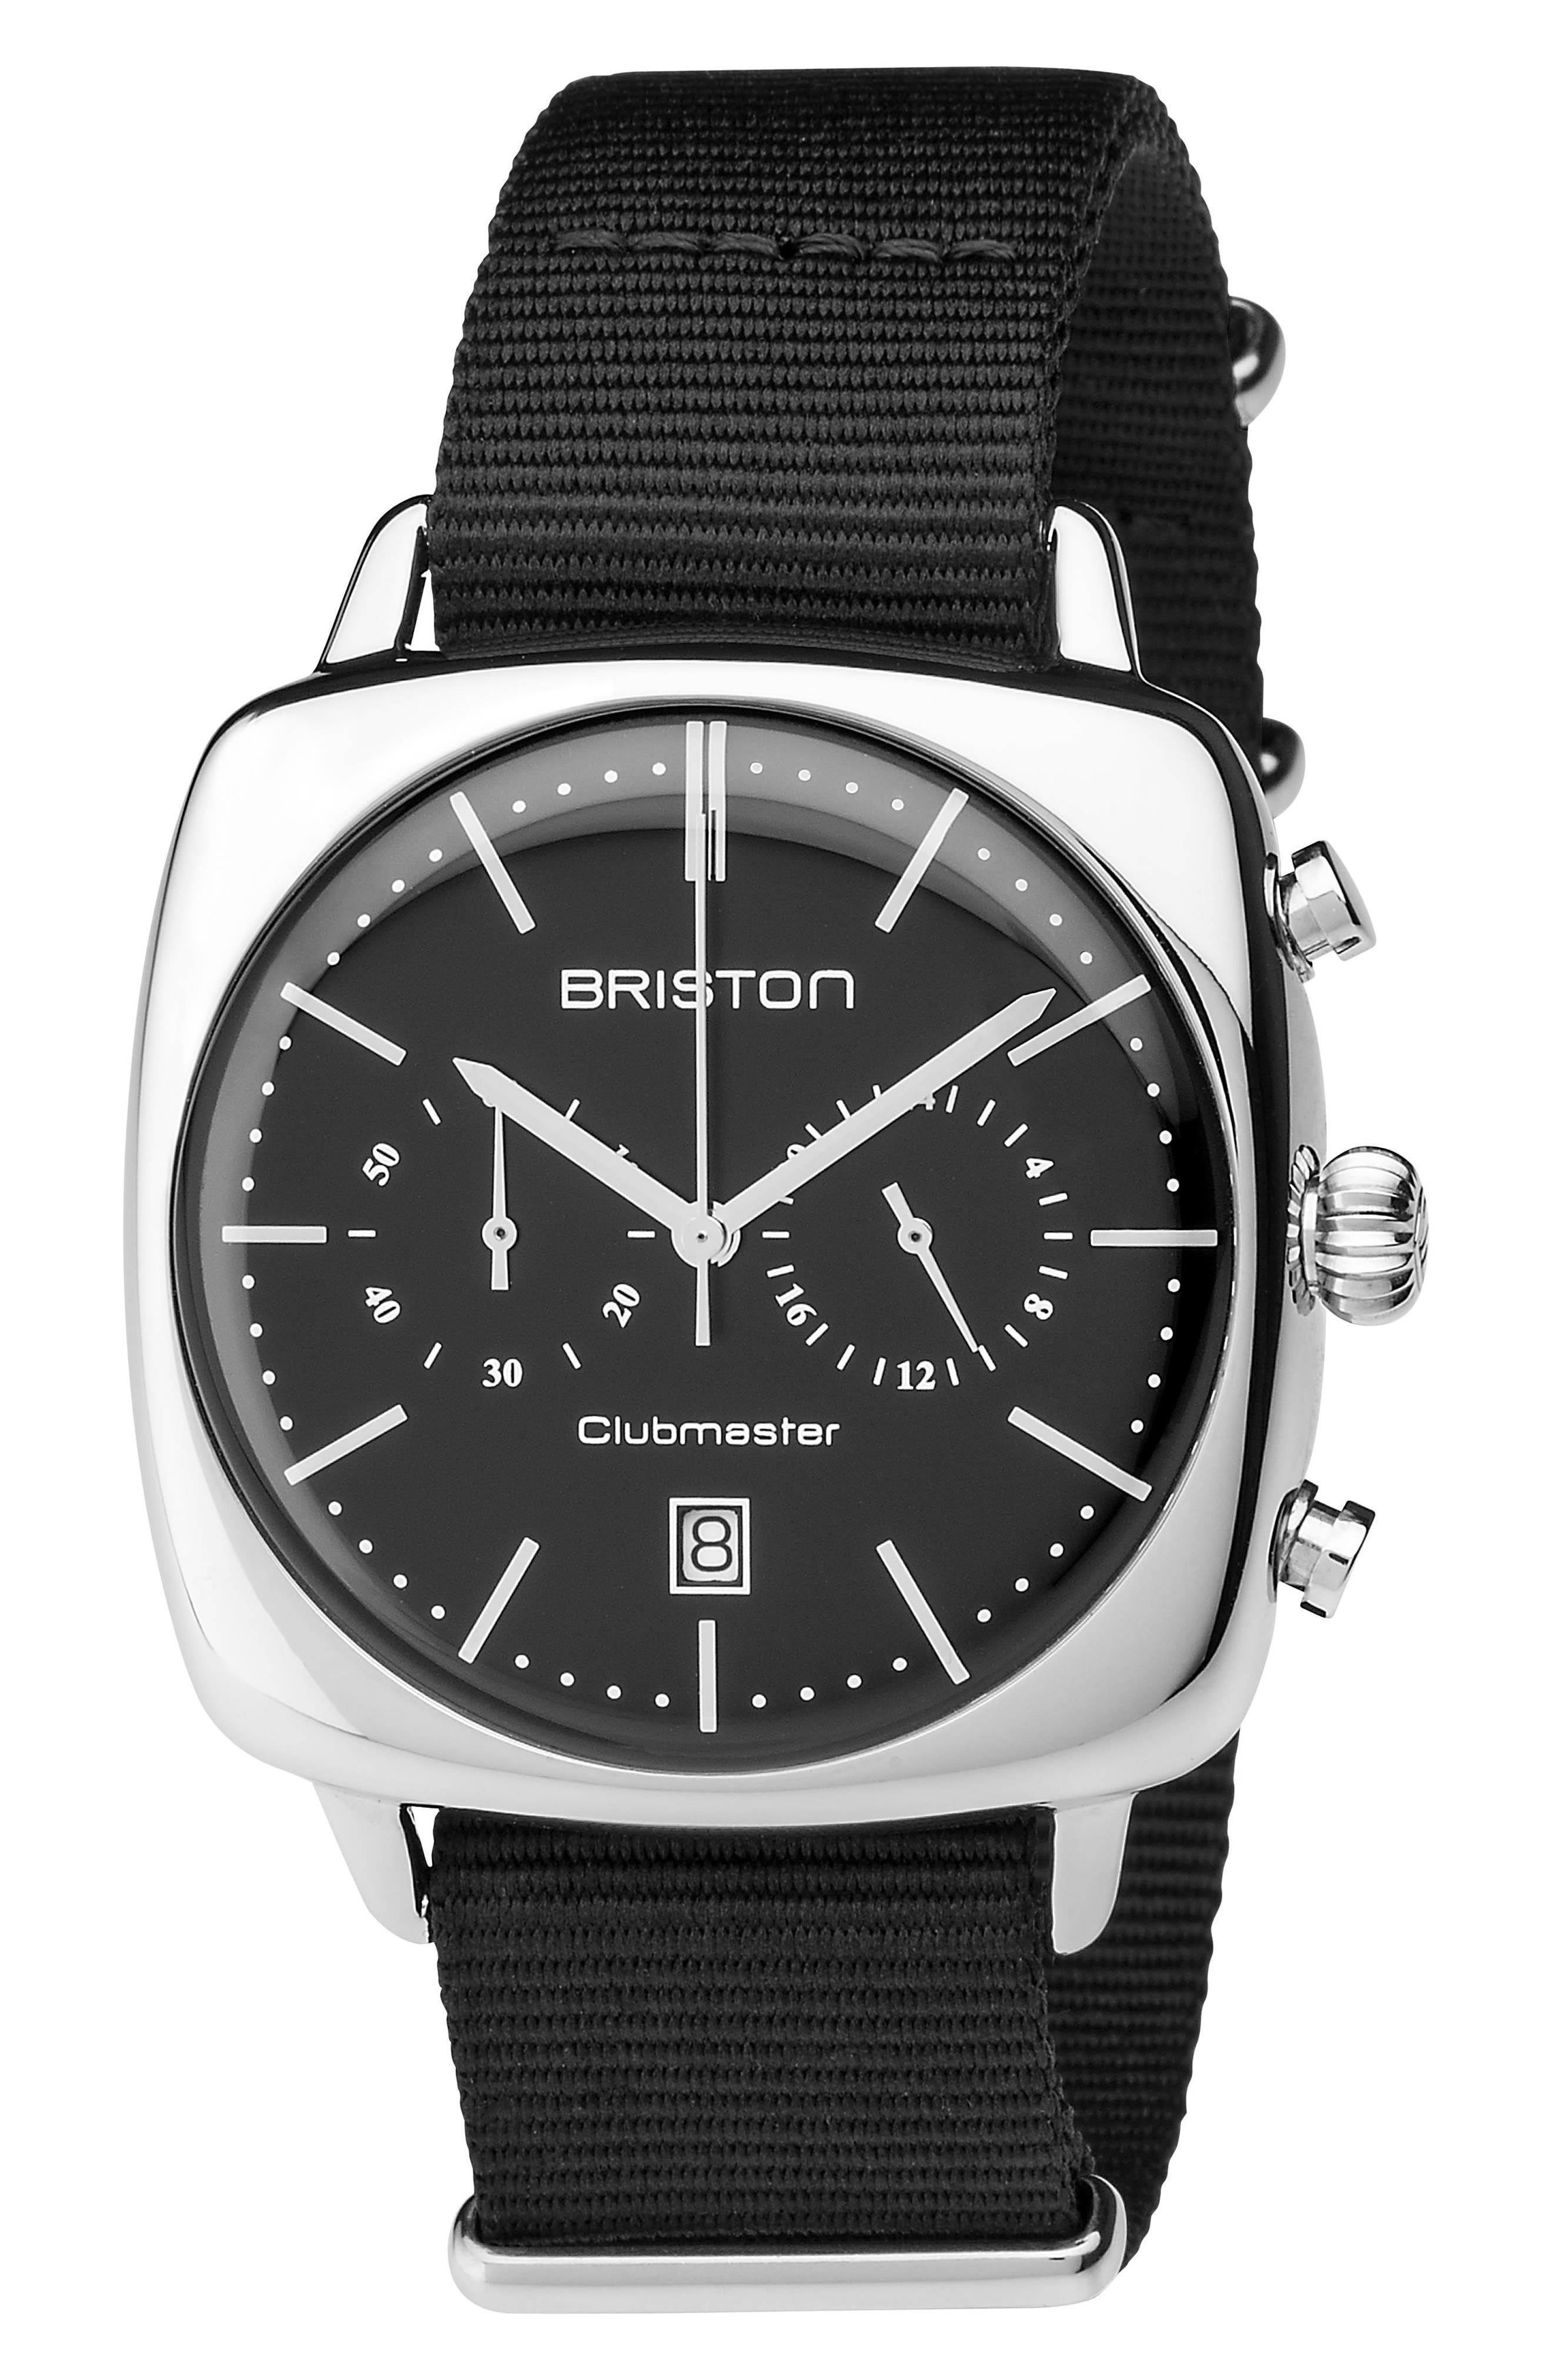 Main Image - Briston Watches Clubmaster Vintage Chronograph Nylon Strap Watch, 40mm